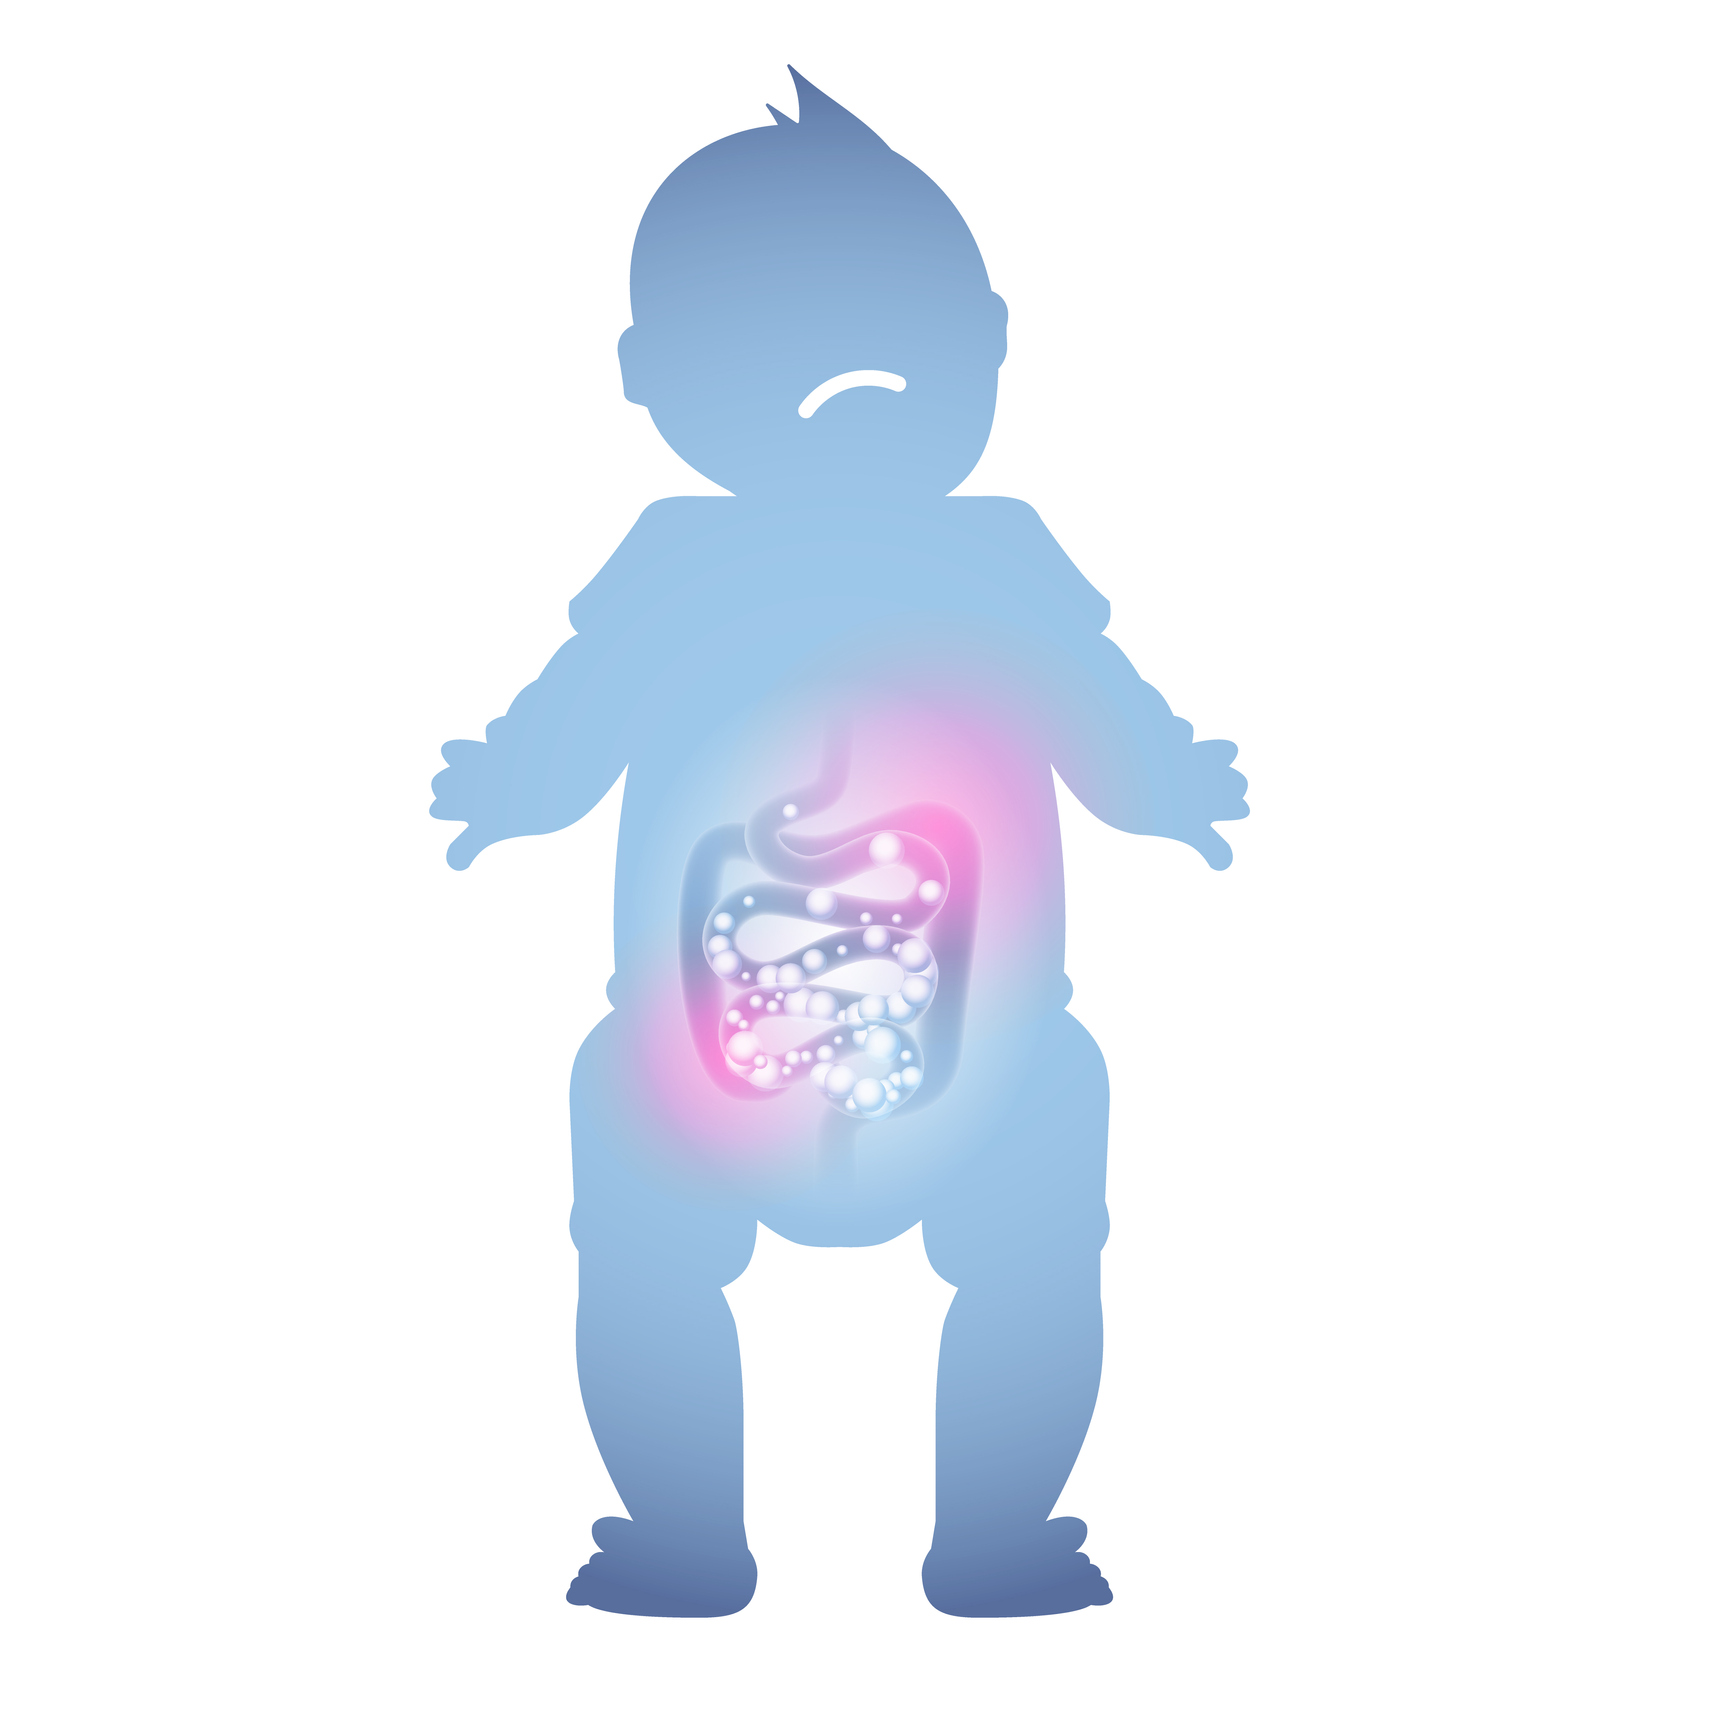 Probiotic Therapy Alleviates Autism >> More On Autism And The Microbiome And A Clinical Study Using